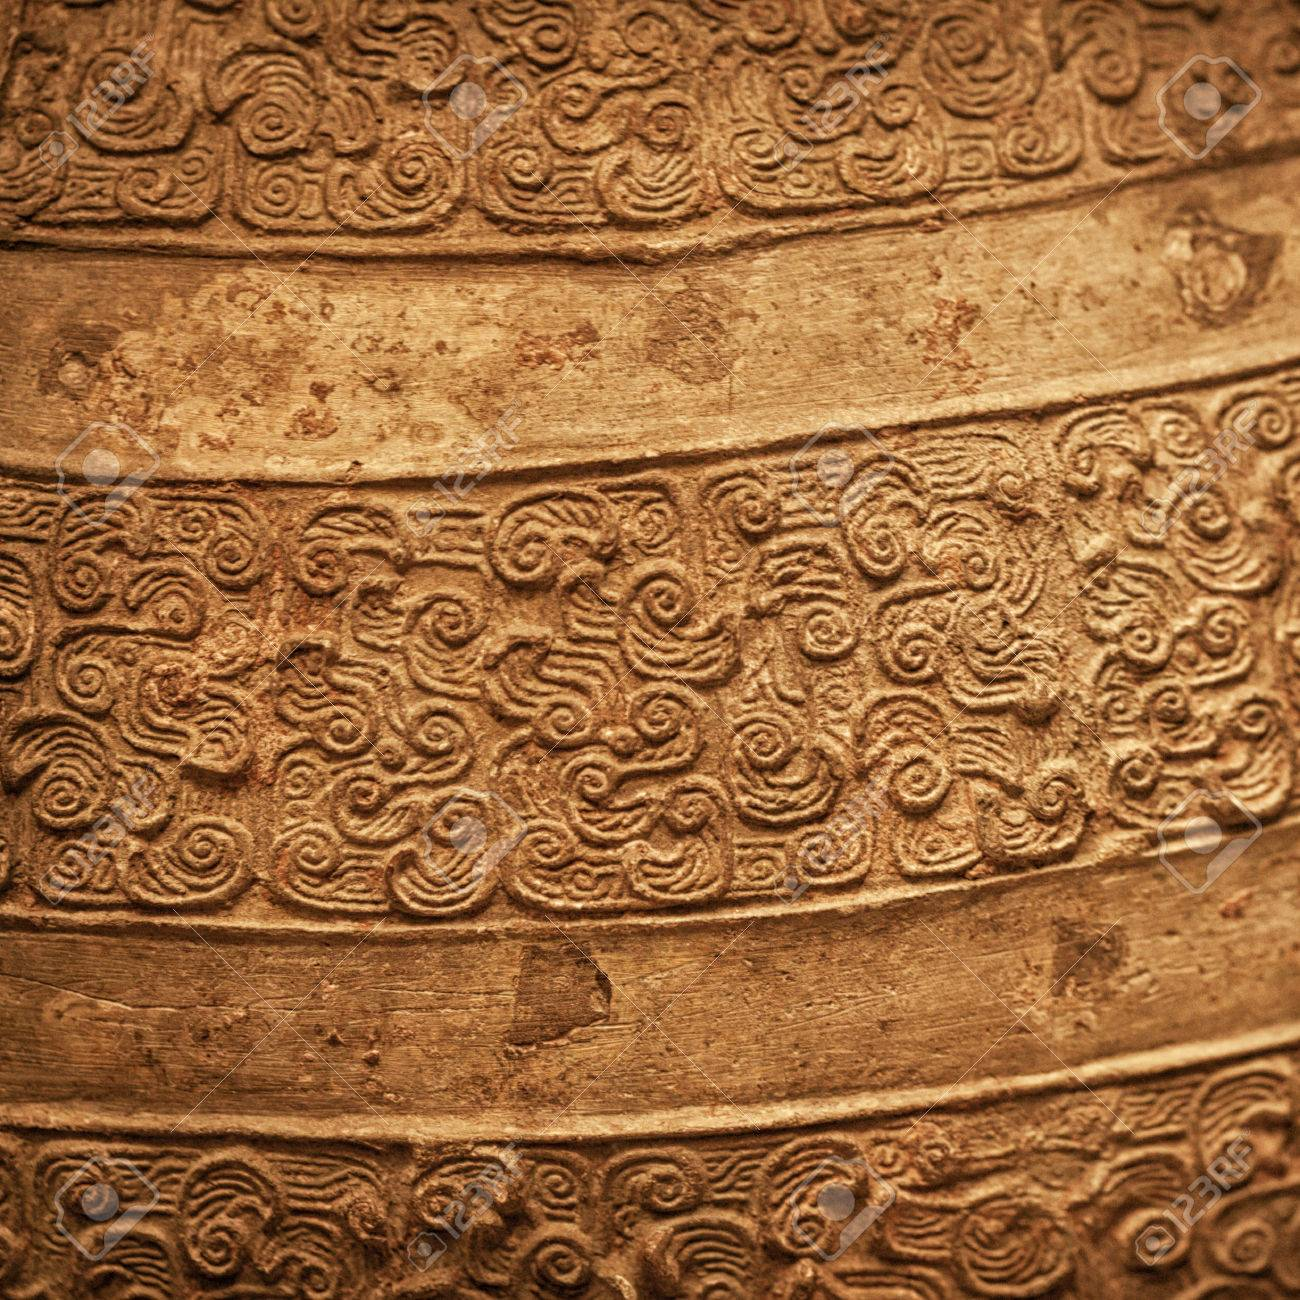 Ancient Chinese Bronze Textured Background Stock Photo Picture And